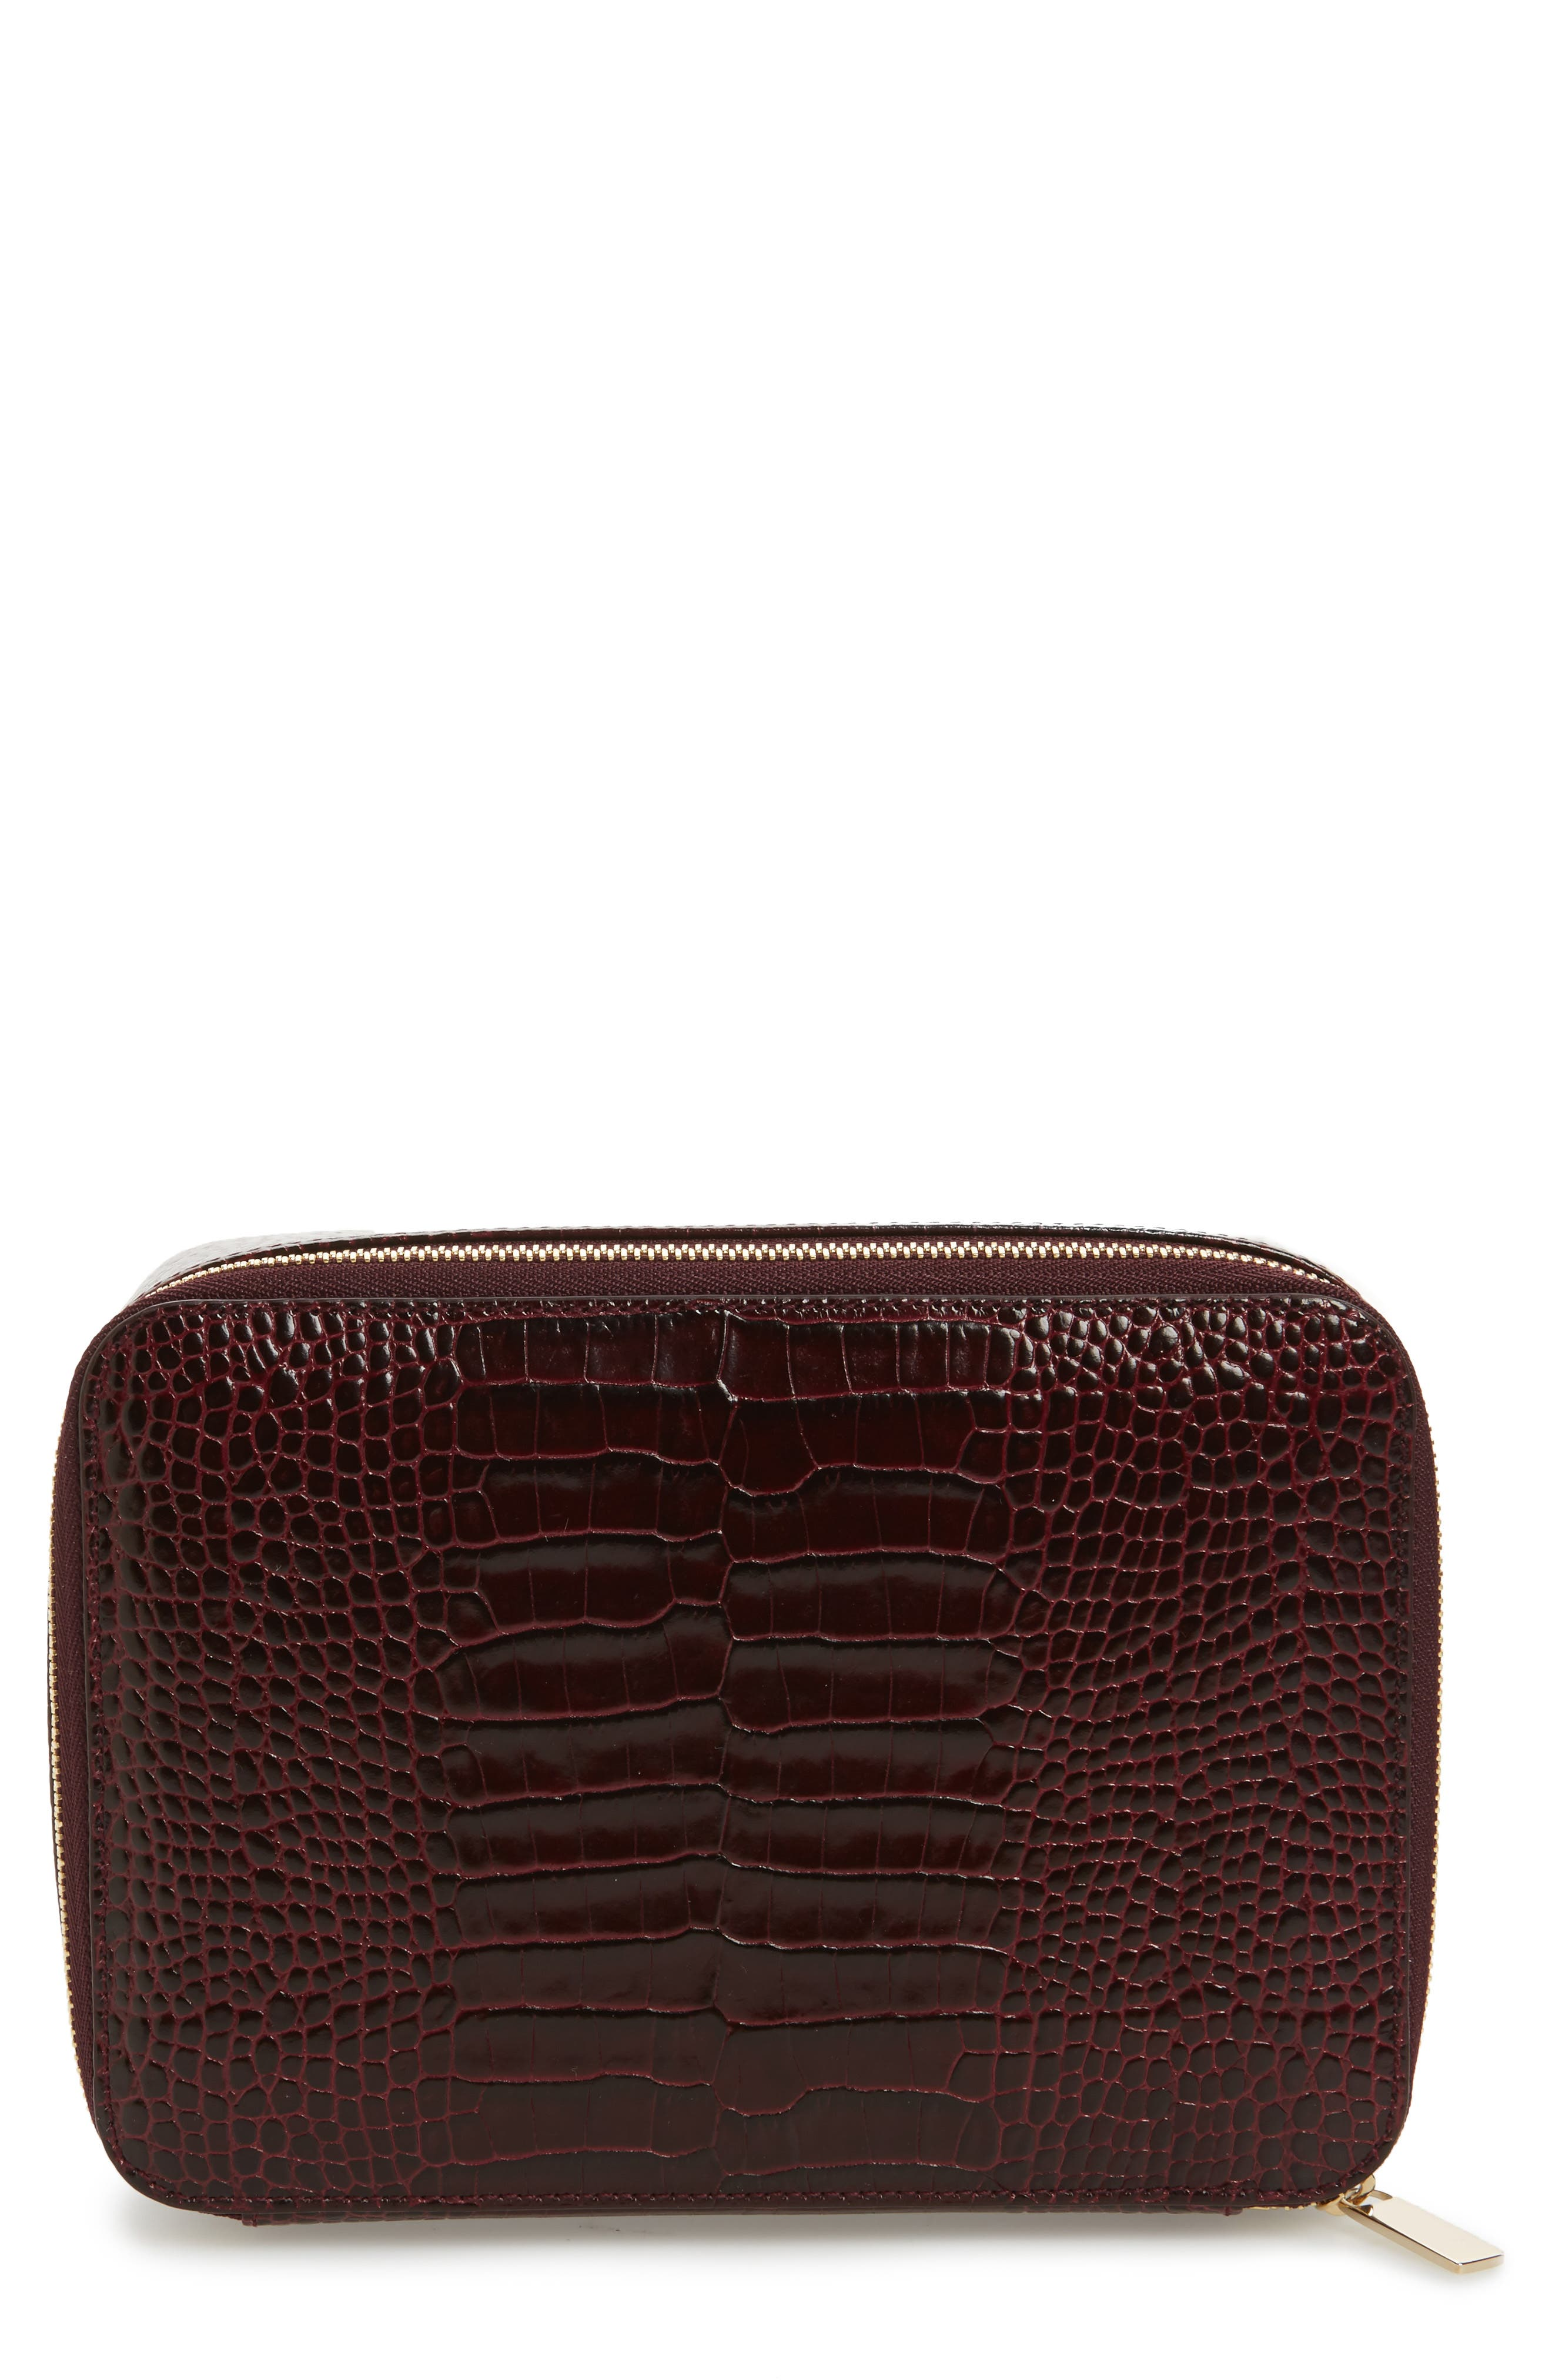 Mara Square Croc Embossed Leather Travel Case,                             Main thumbnail 1, color,                             930